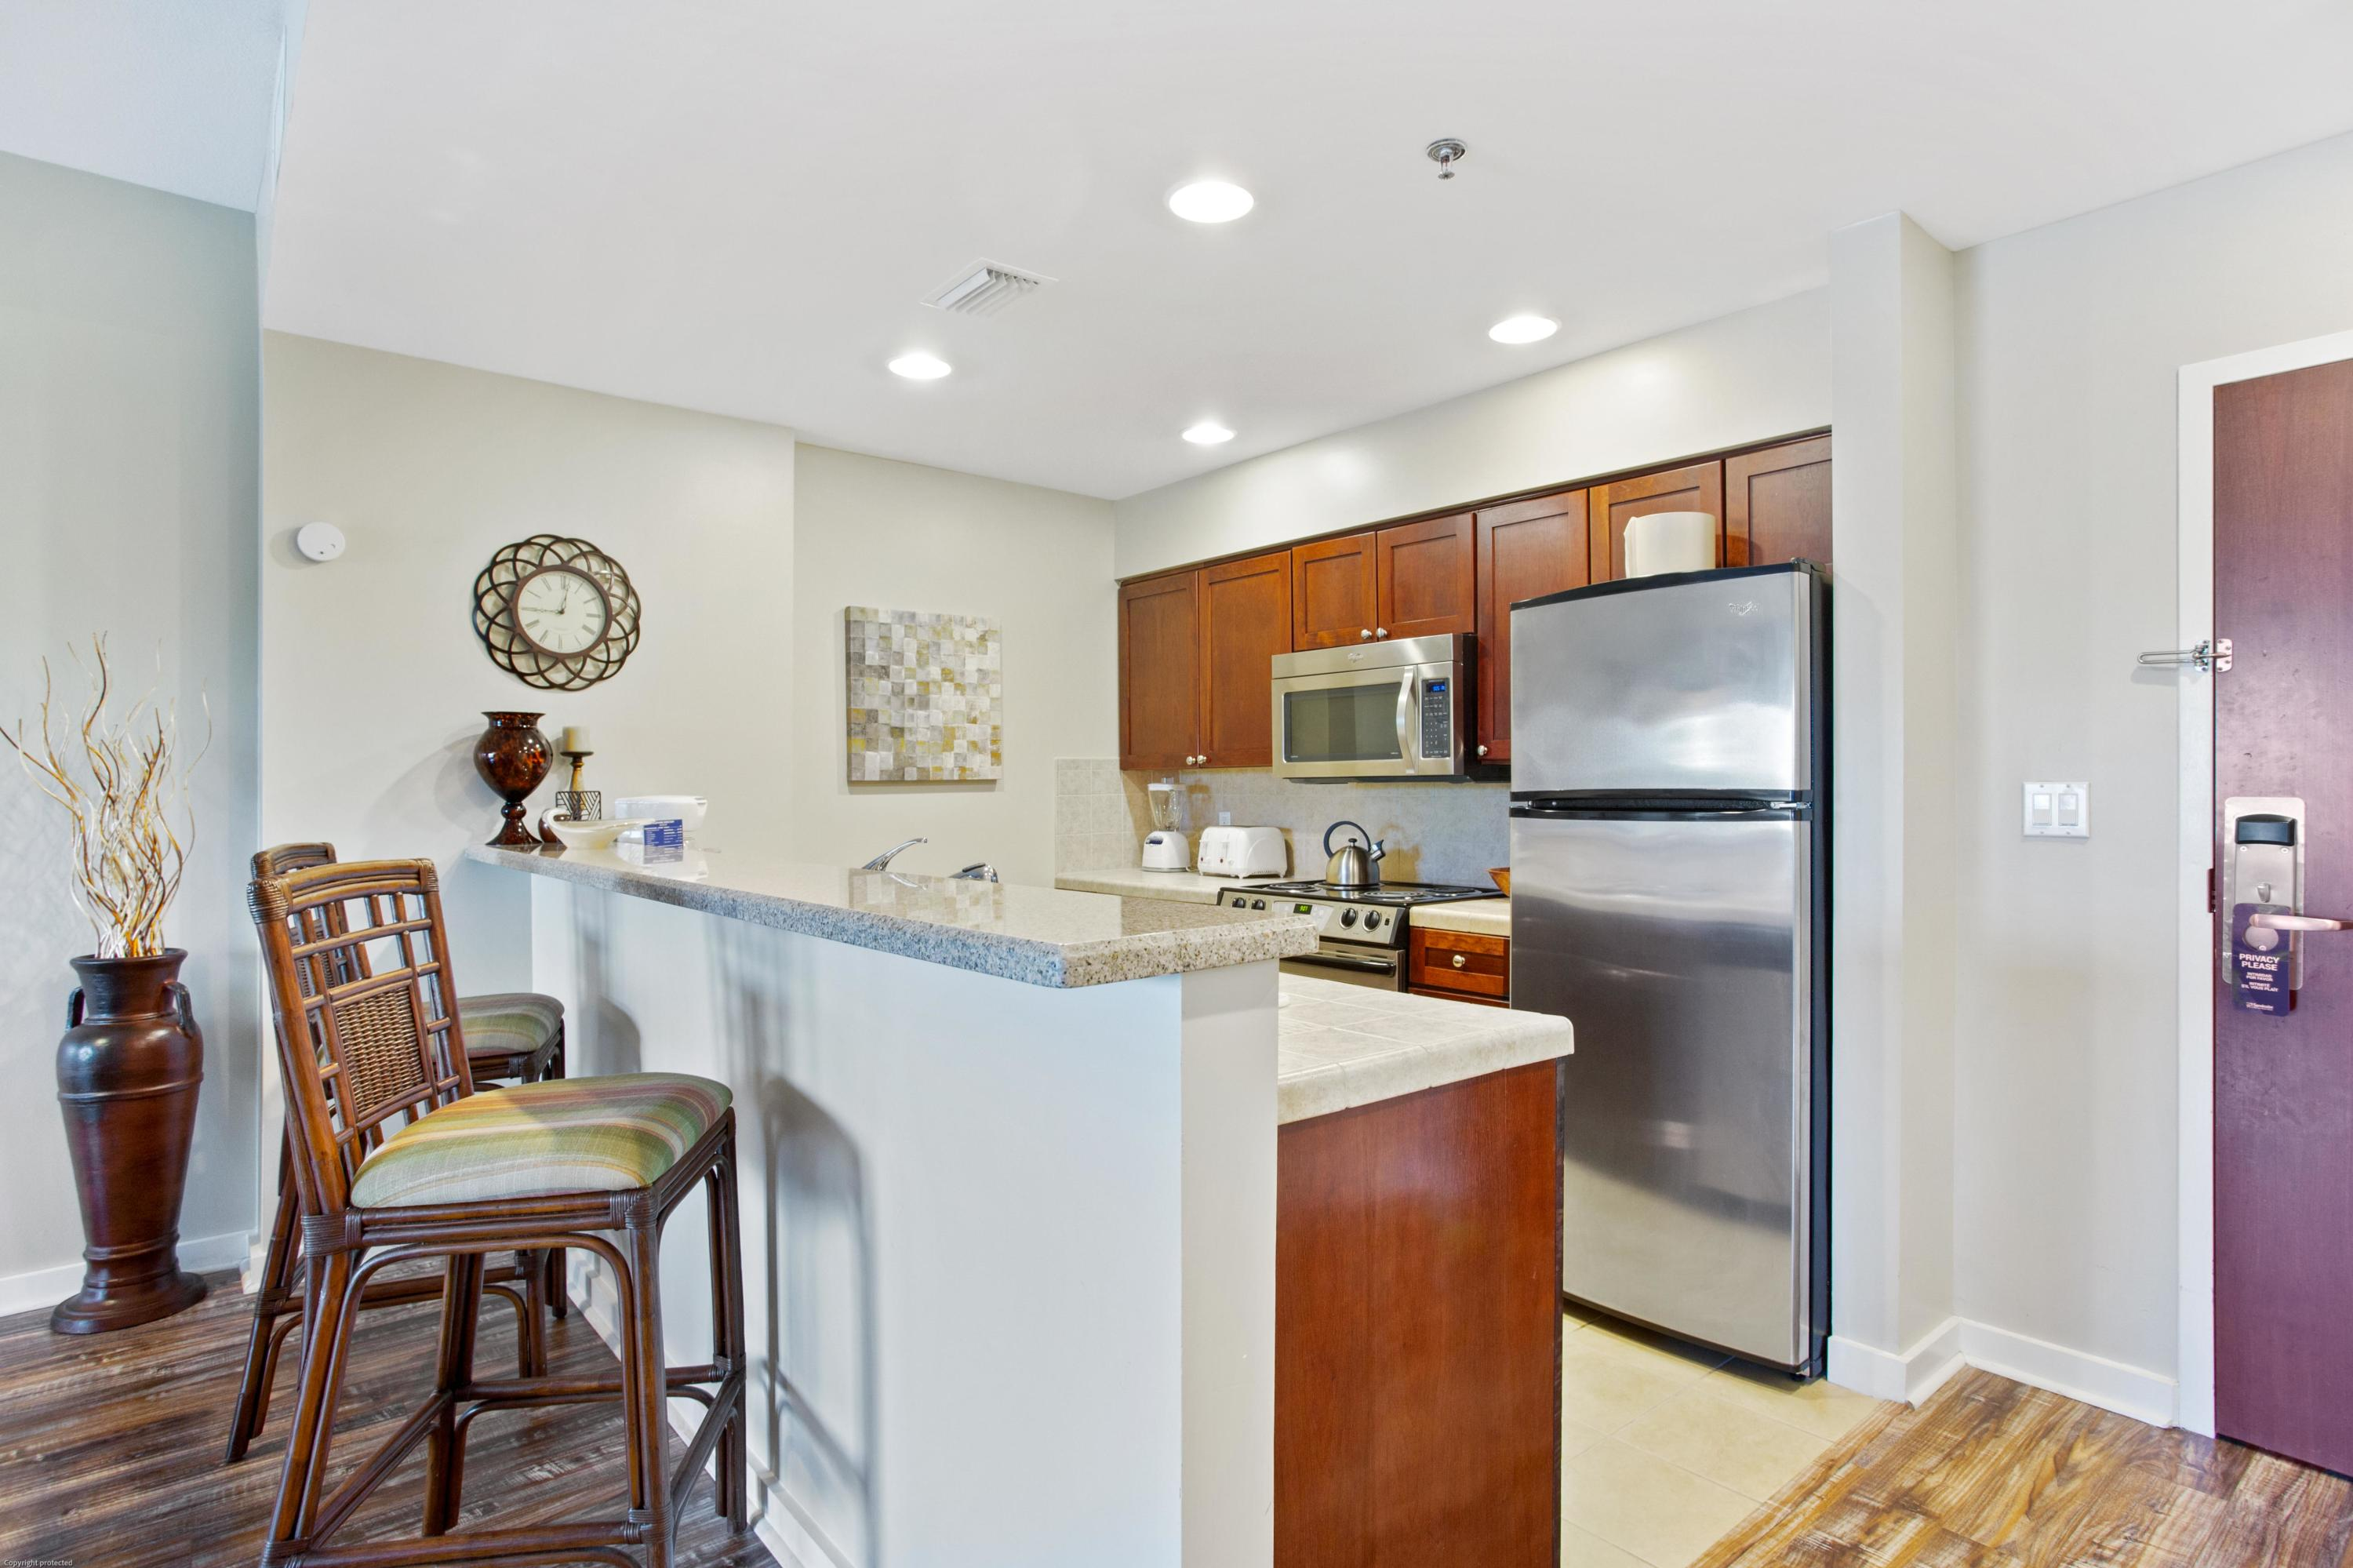 Listen to the sounds of the grotto waterfall from this 1-bedroom condo overlooking the Luau pool. Co